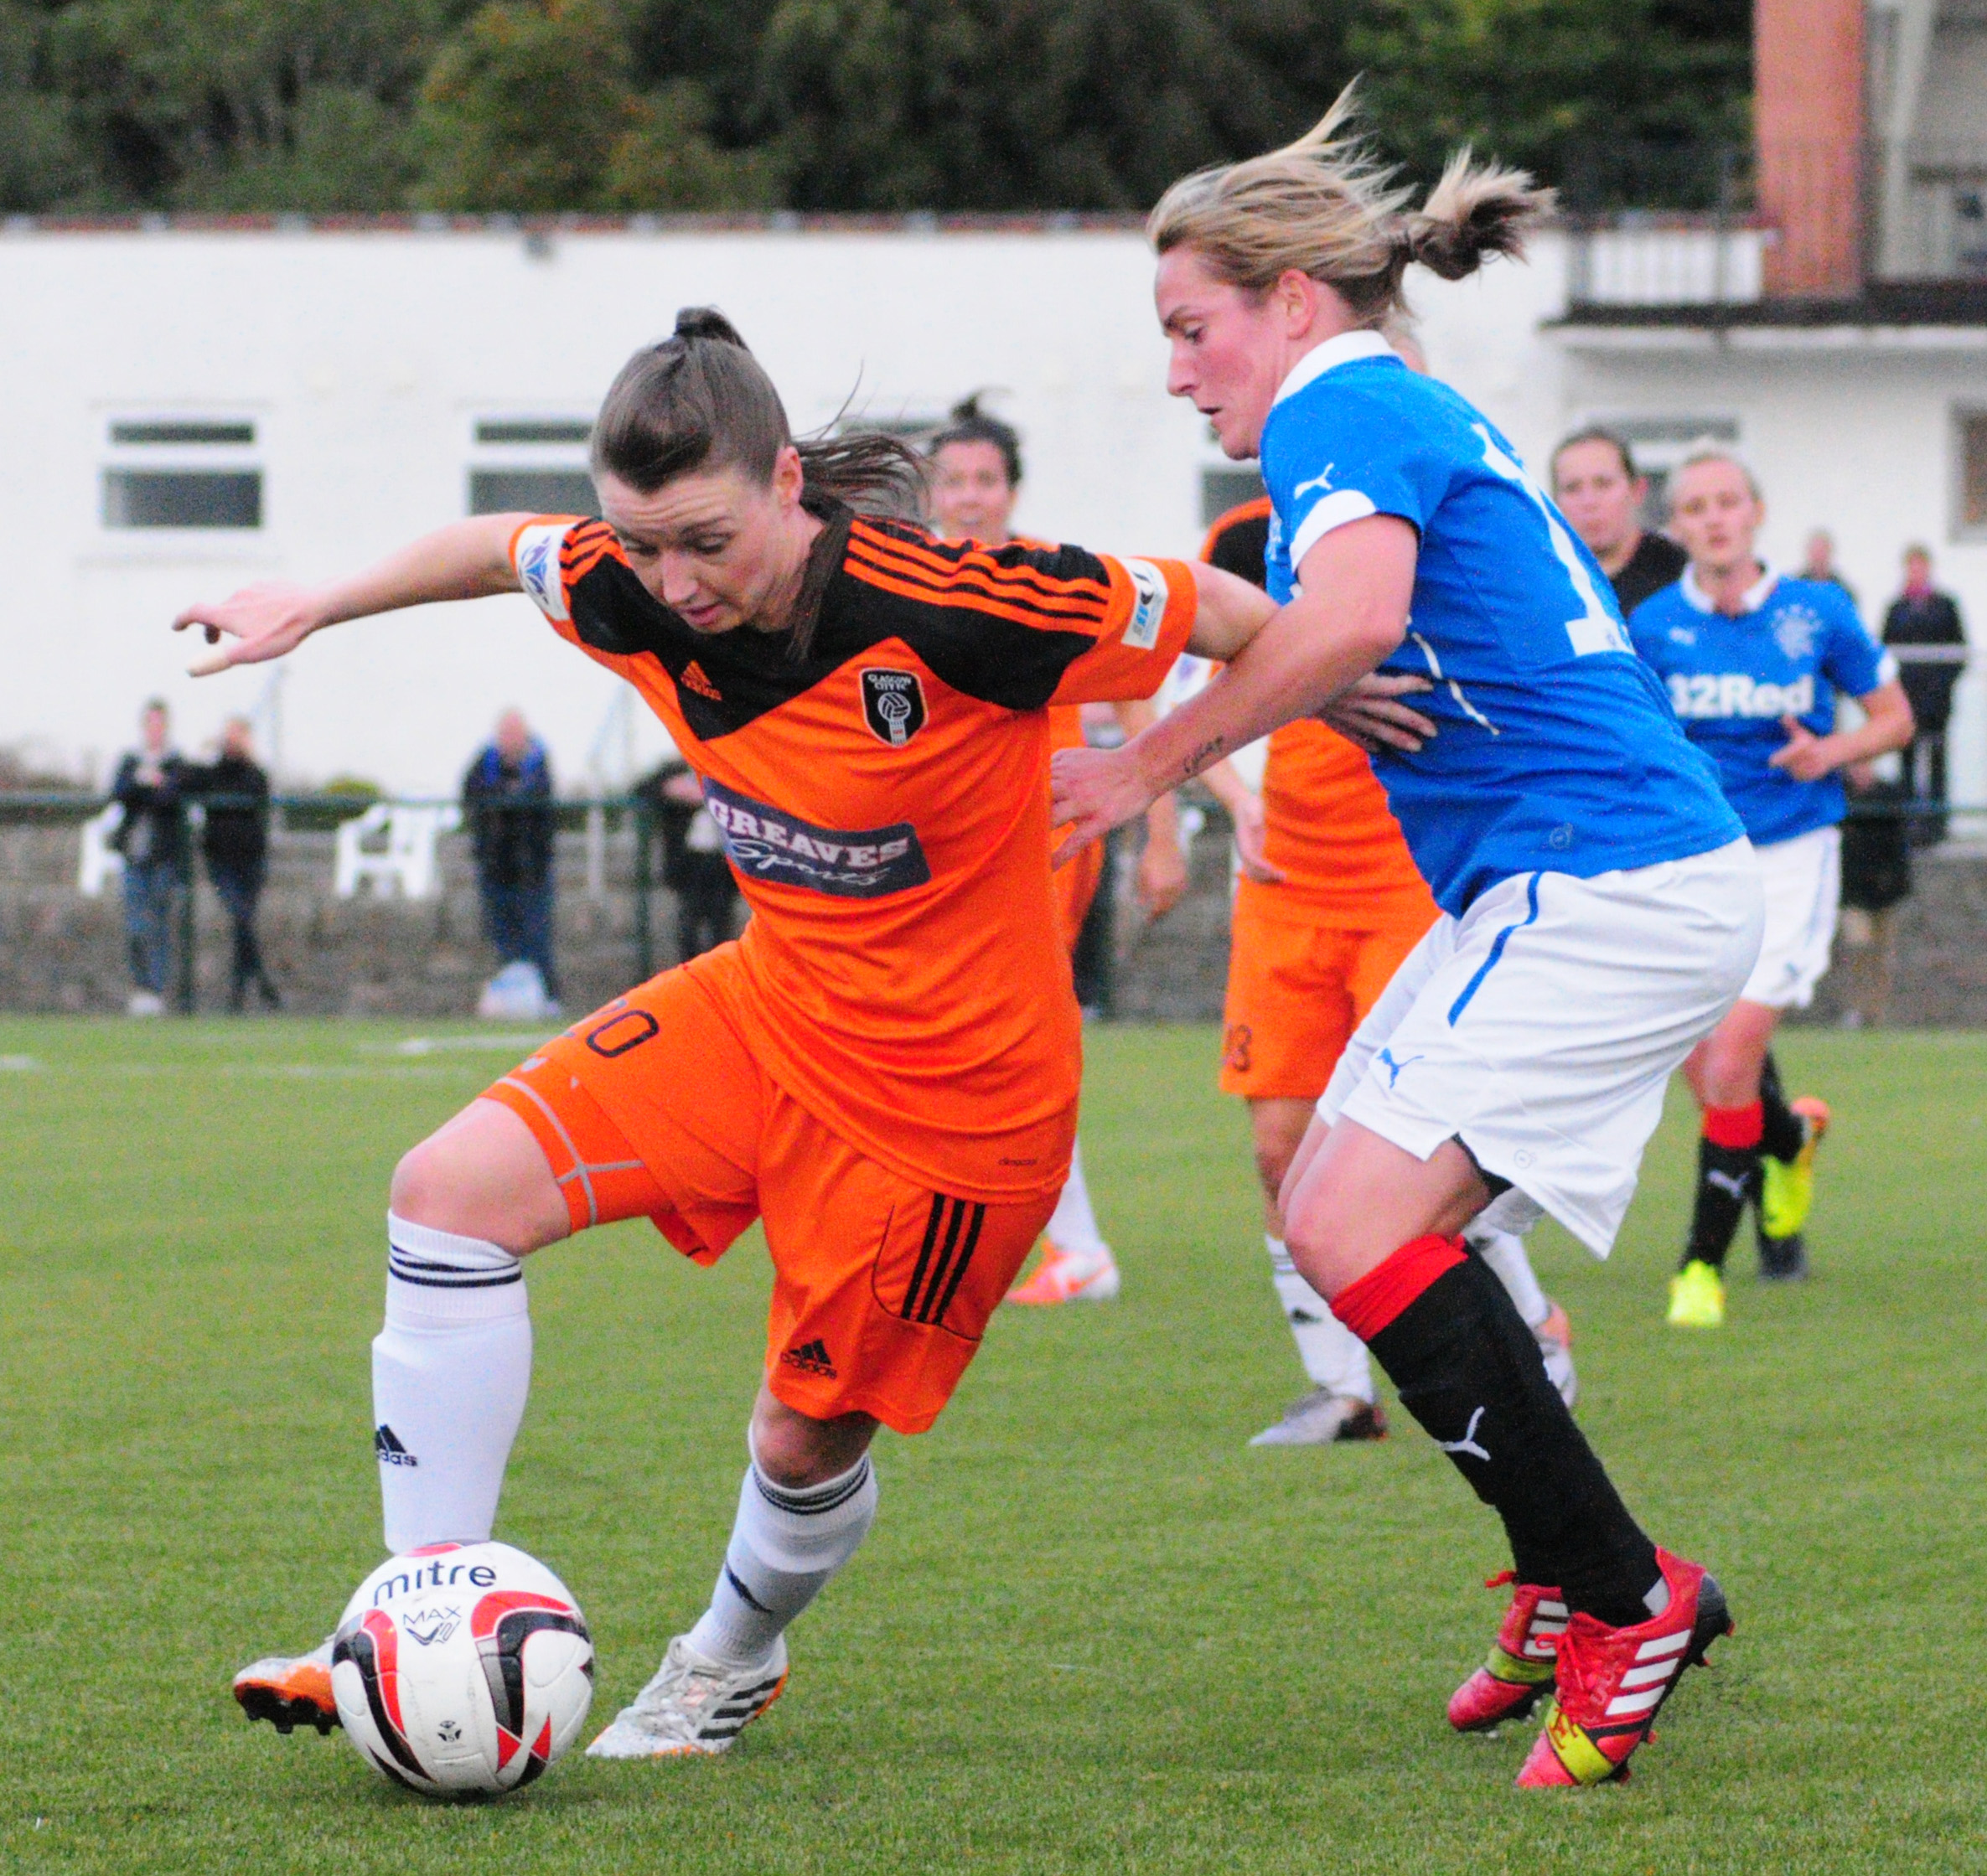 Susan Fairlie in action. Image courtesy of Graeme Berry